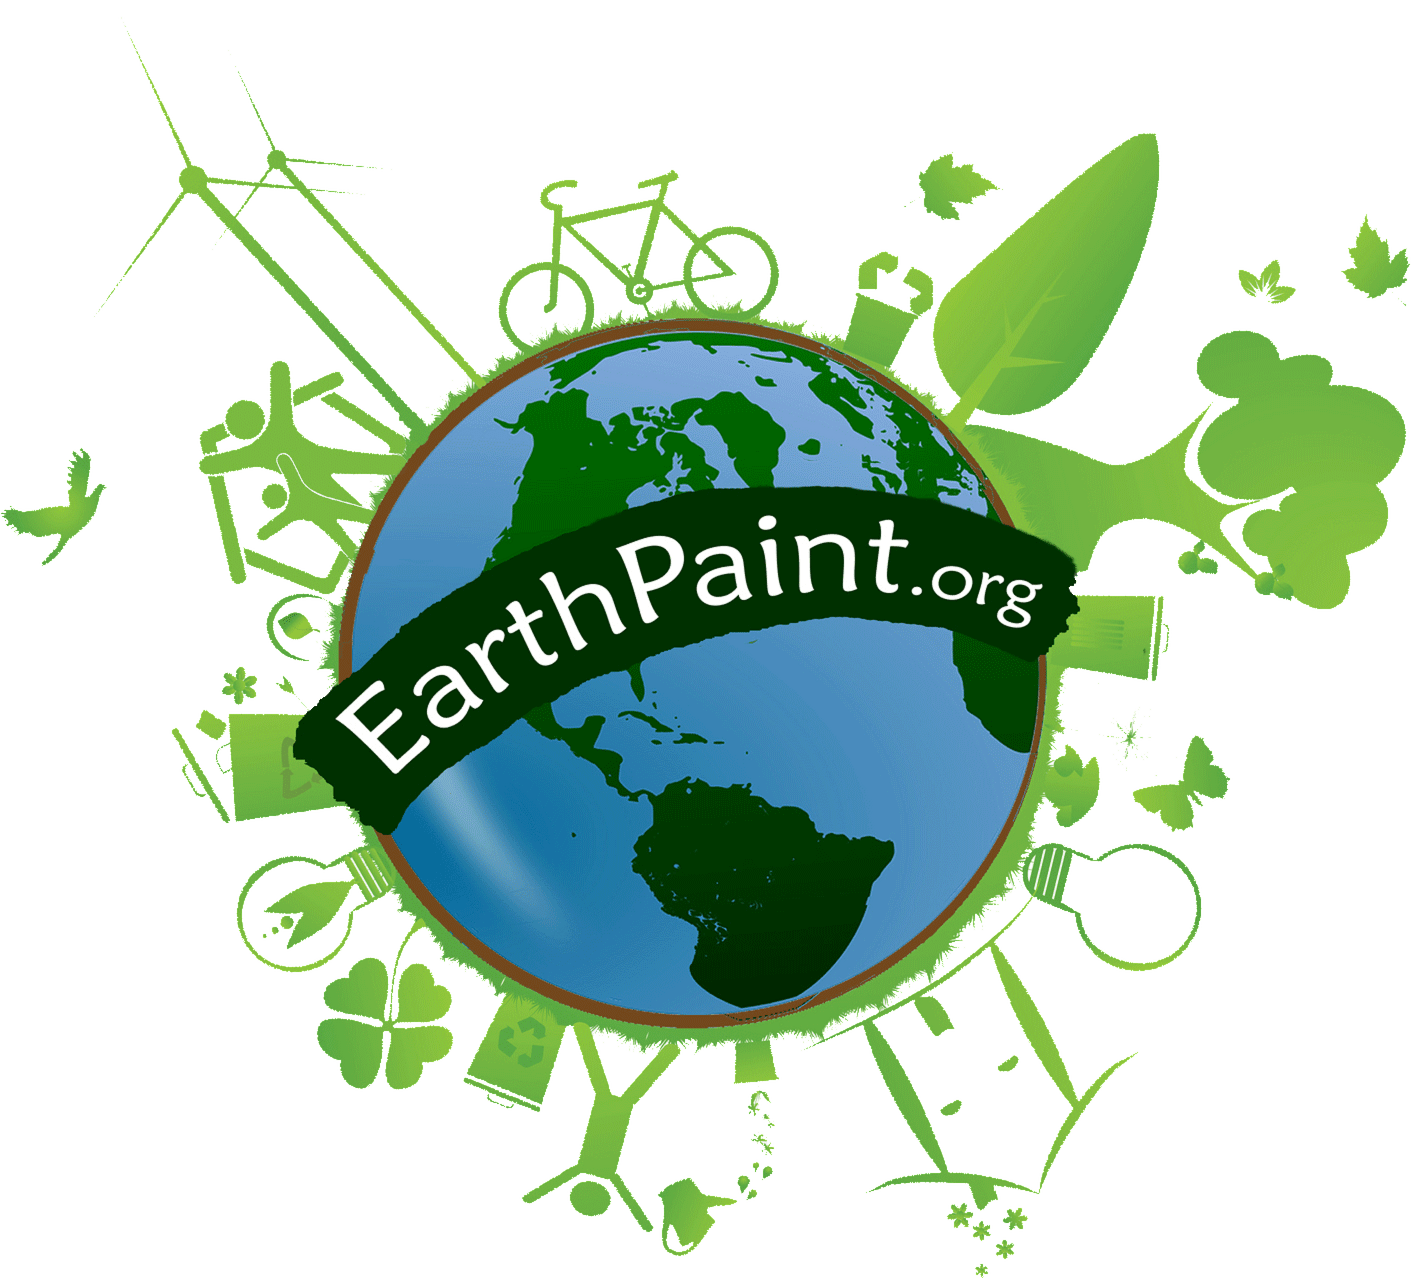 EarthPaint.Org